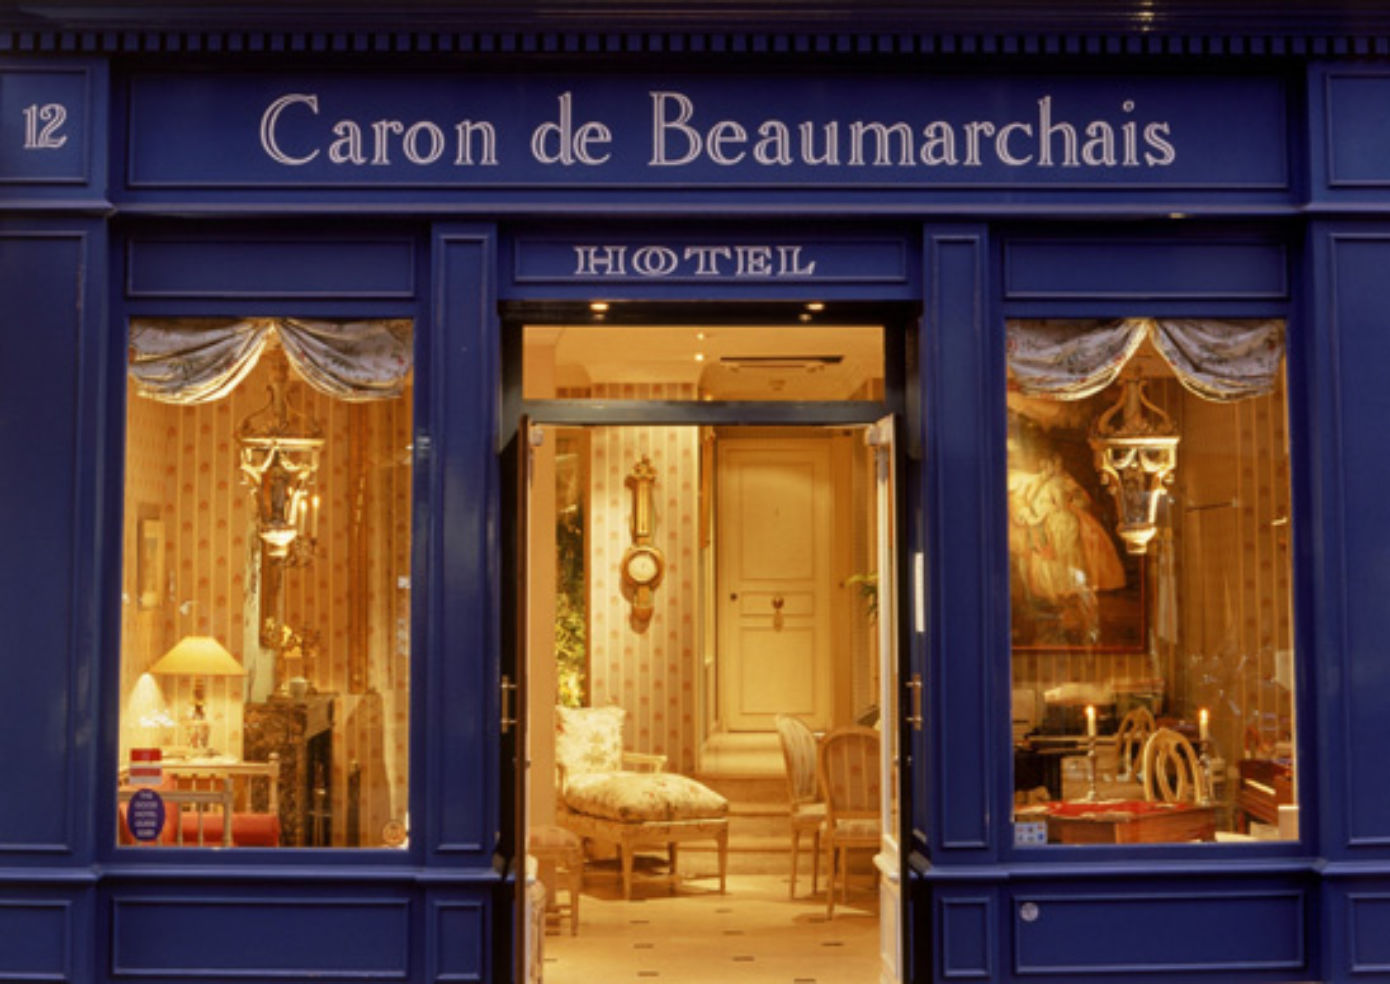 hotel caron de beaumarchais photos budget travel. Black Bedroom Furniture Sets. Home Design Ideas